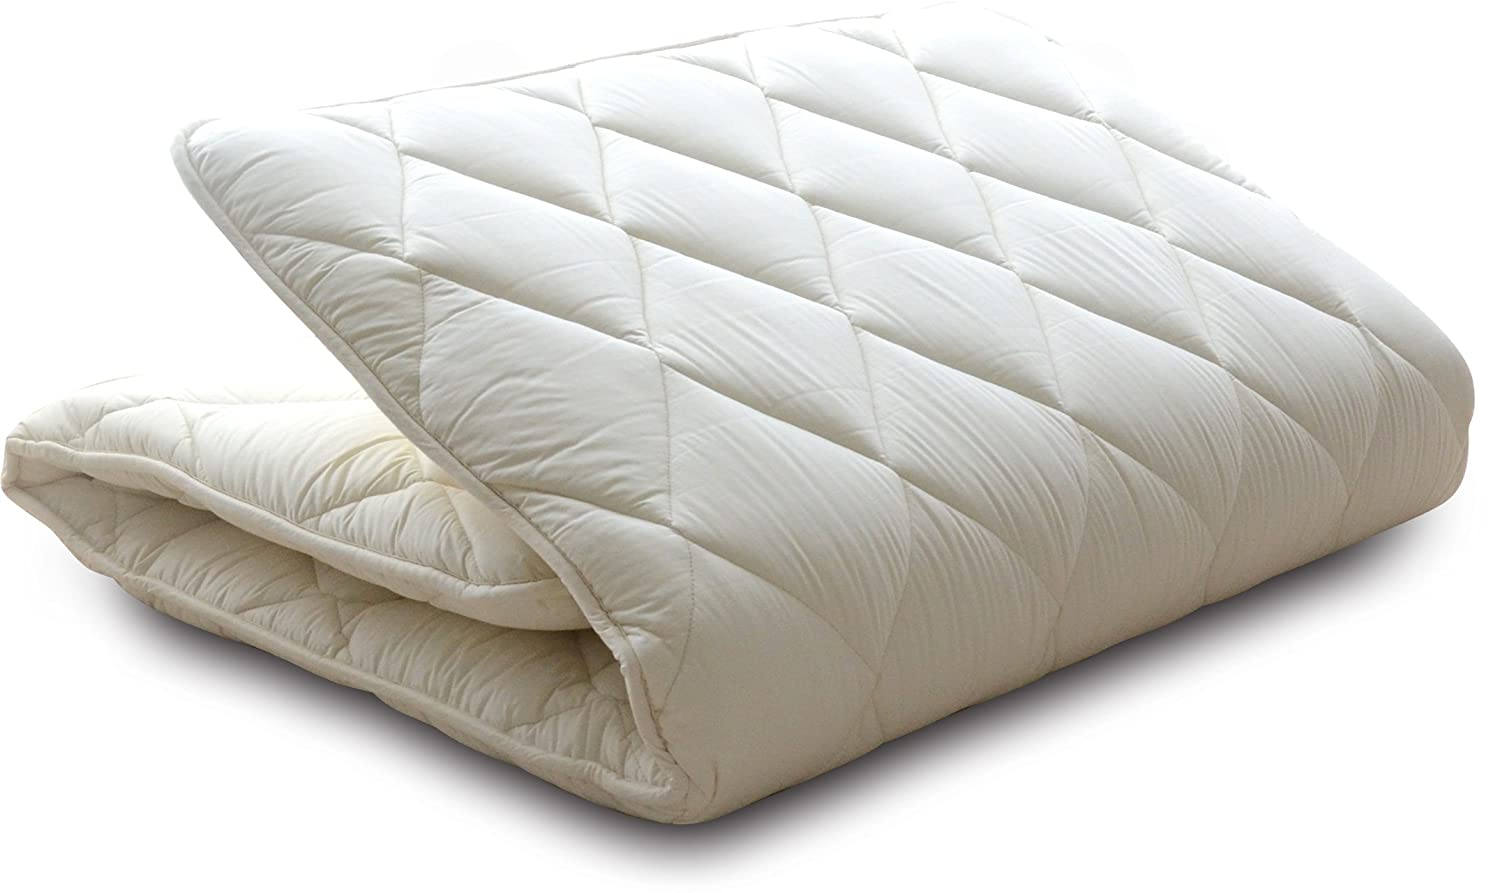 natural shipping size organic mattress canada dunlop king tufts covers in mattresses futon cheap with free mfc